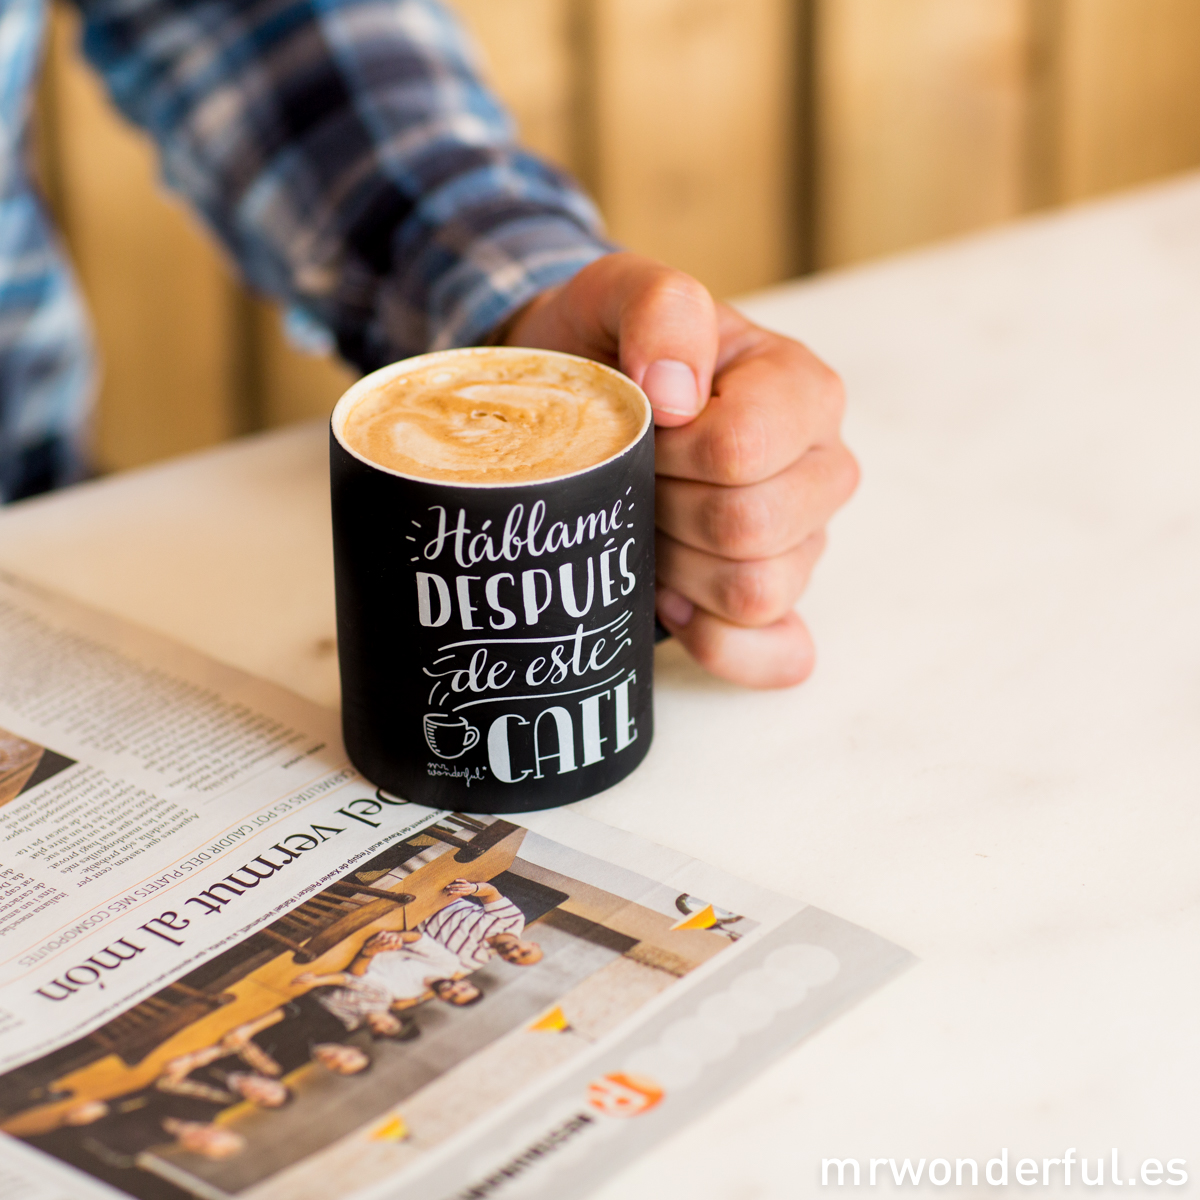 mrwonderful_8436547191420_WON-194_TAZA_Taza-Negra-hablame-despues-de-este-cafe-28